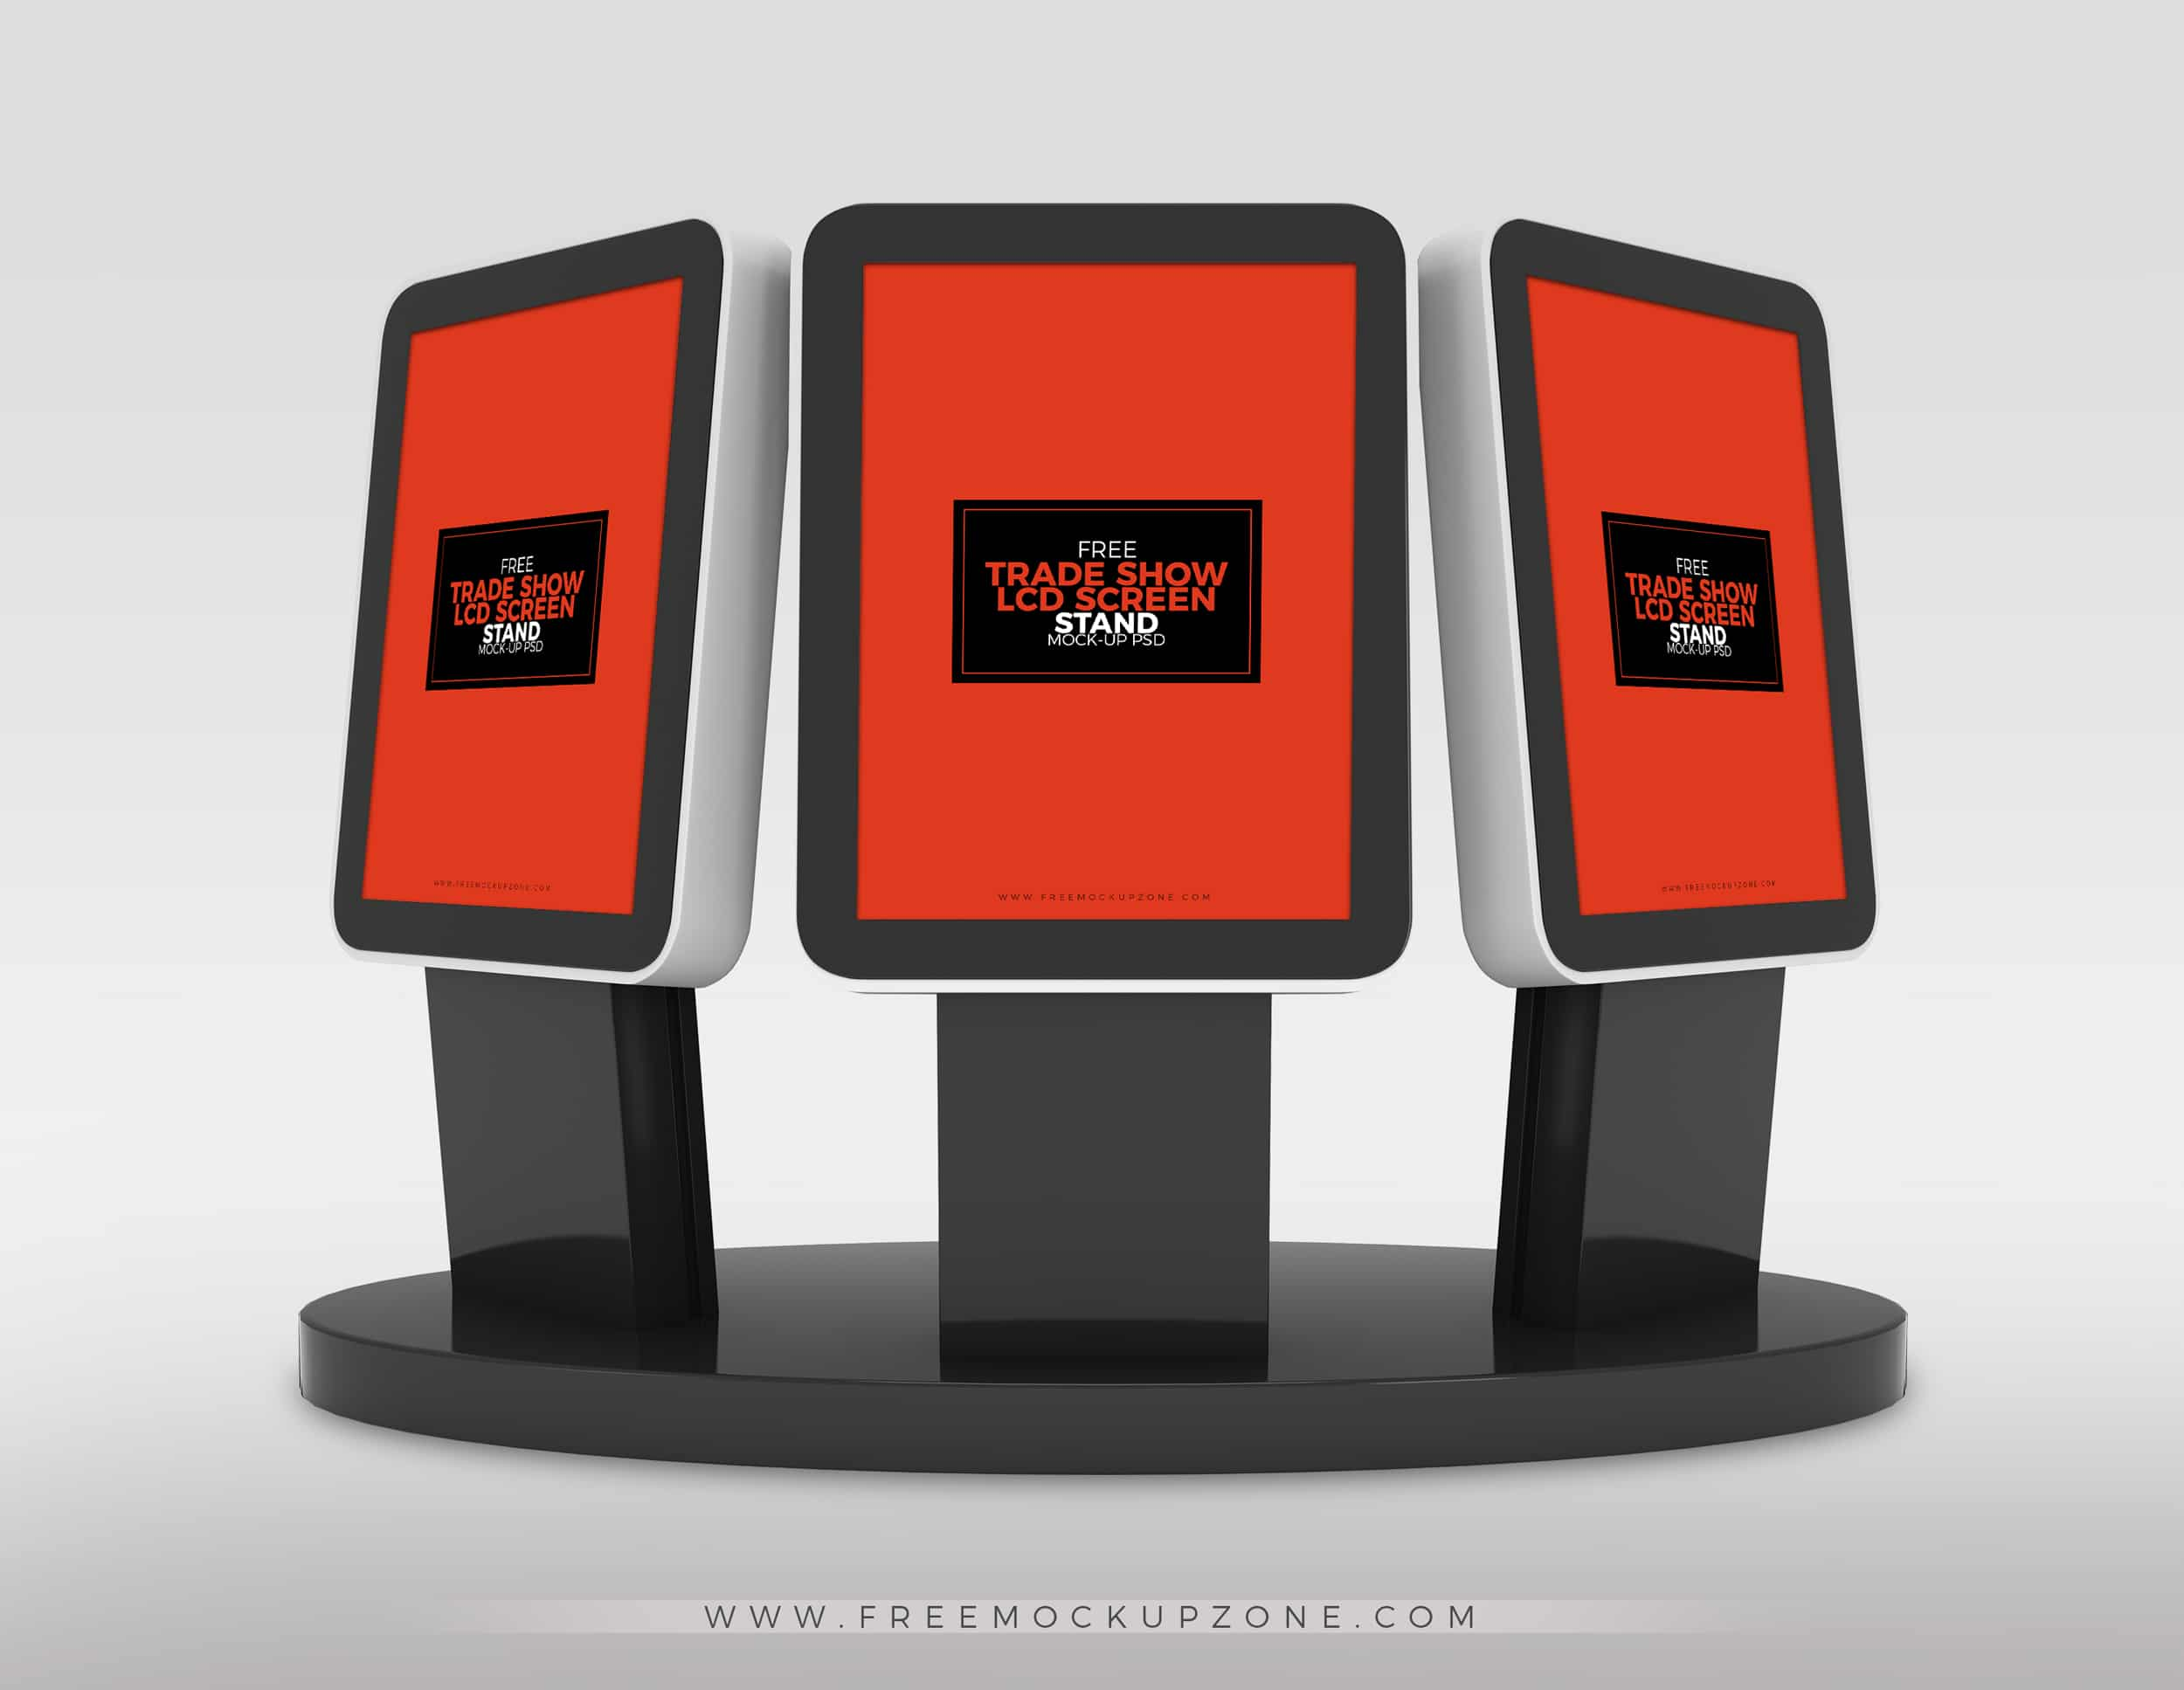 Trade Show LCD Screens